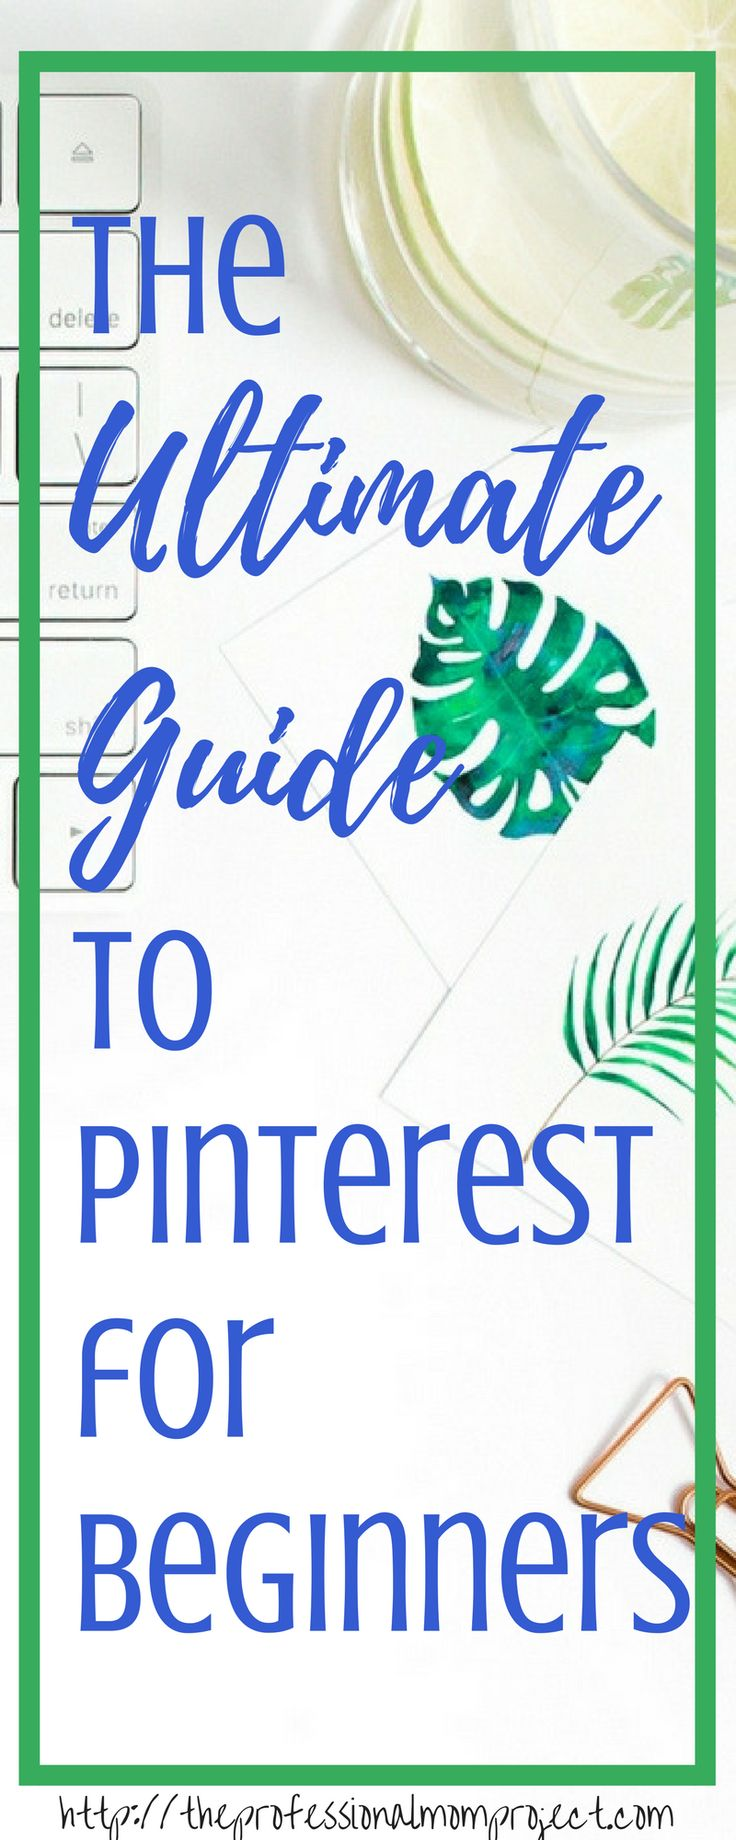 The ultimate guide to Pinterest for Beginners. A simple how to use Pinterest for Newbies